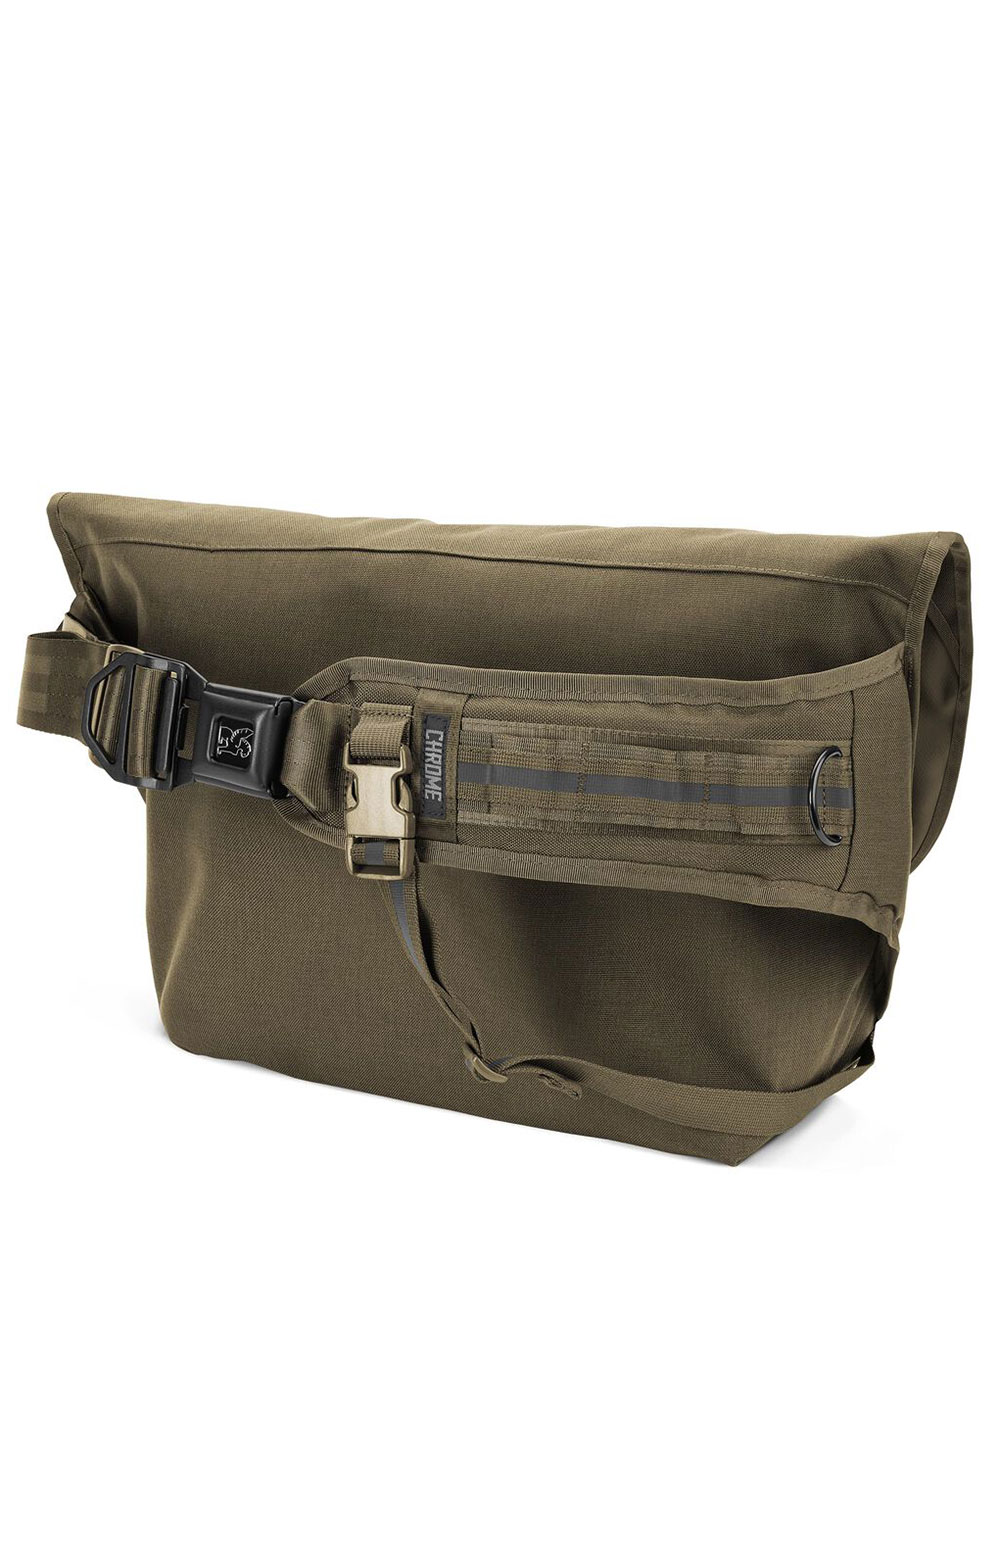 (BG-002-RGTO) Citizen Messenger Bag - Ranger Tonal 2